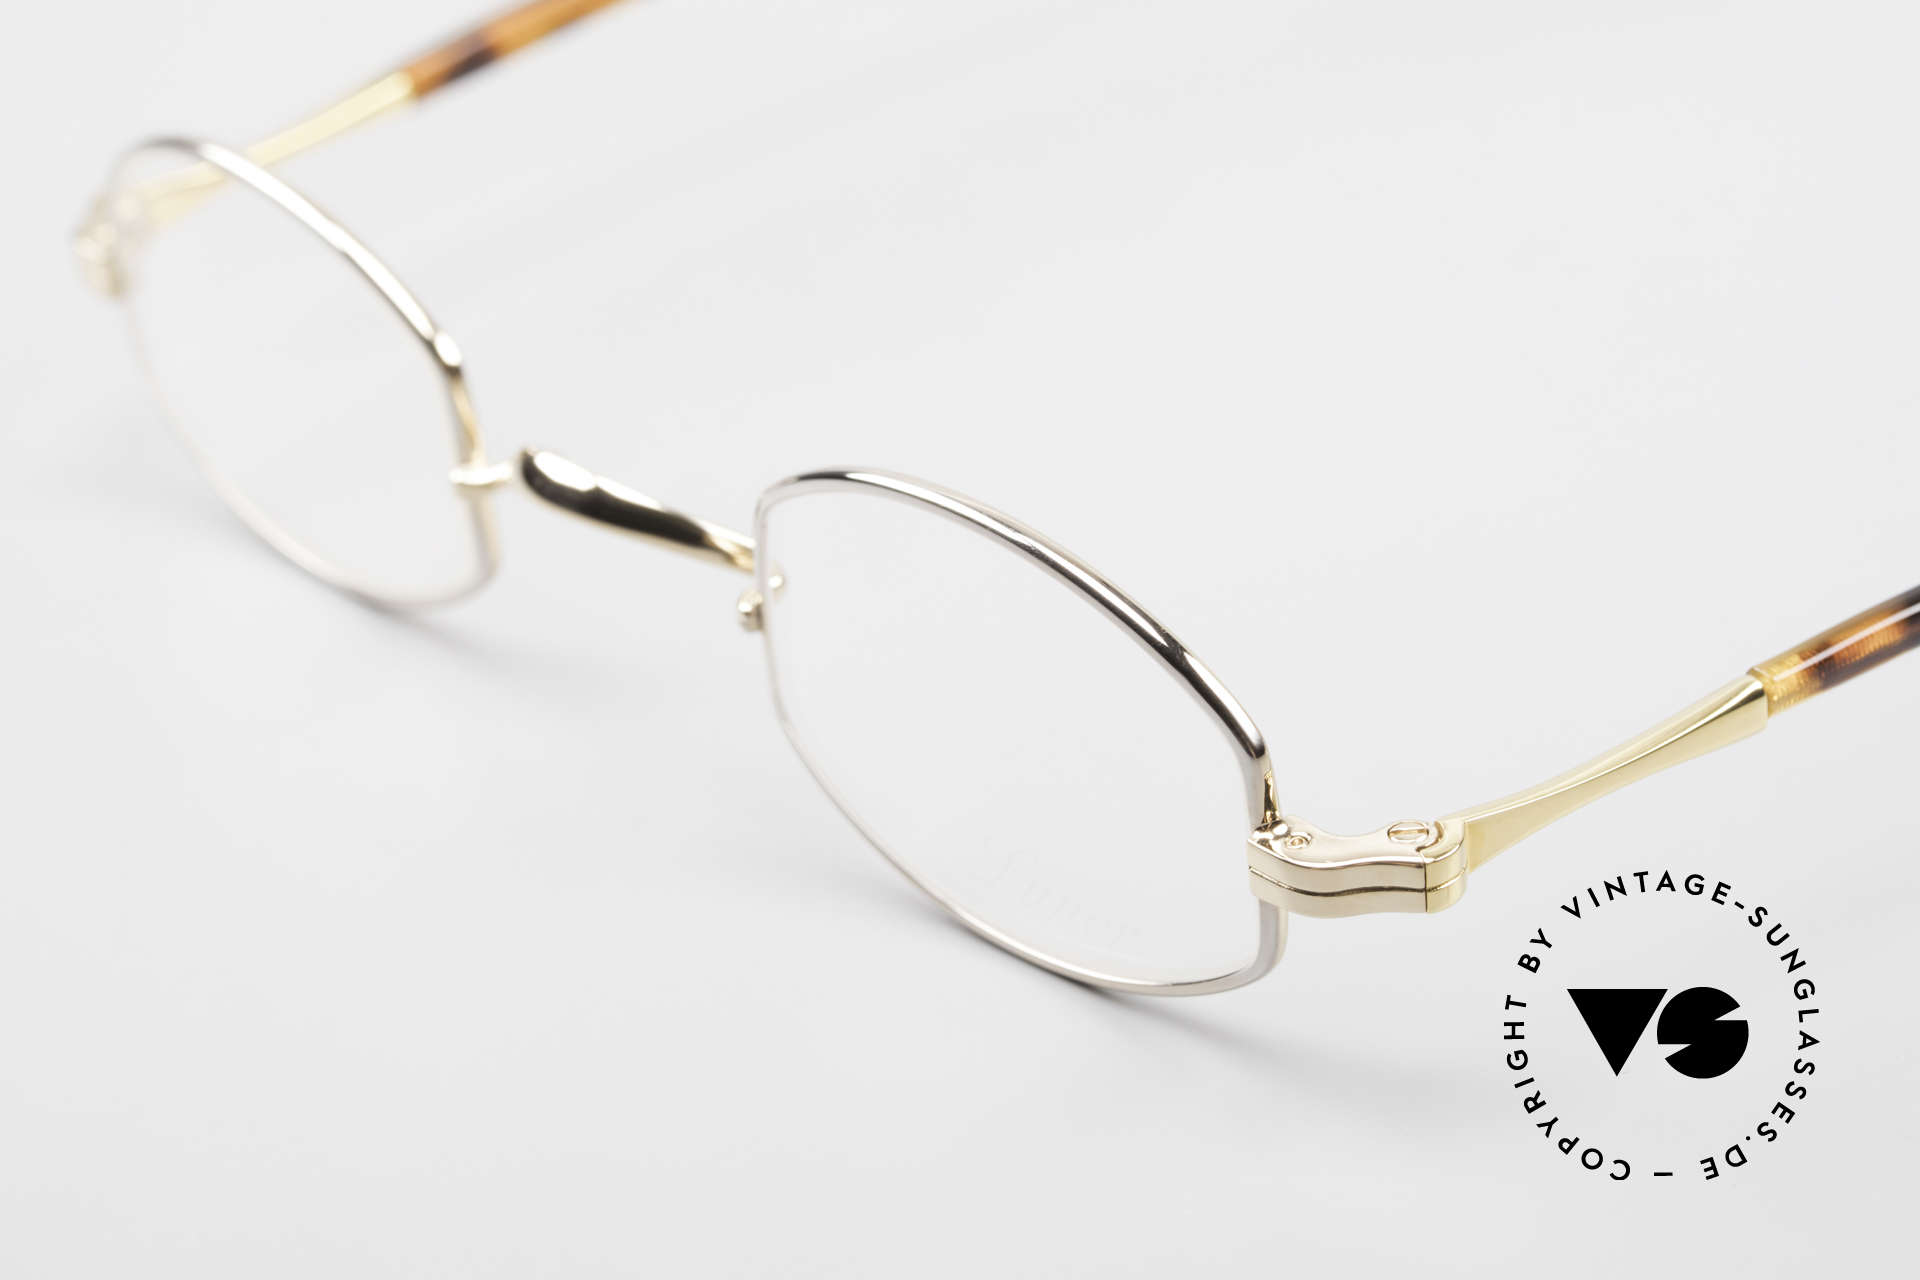 Lunor II A 02 Limited Edition BC Tortoise, approx. 20 years old UNWORN pair for lovers of quality, Made for Men and Women